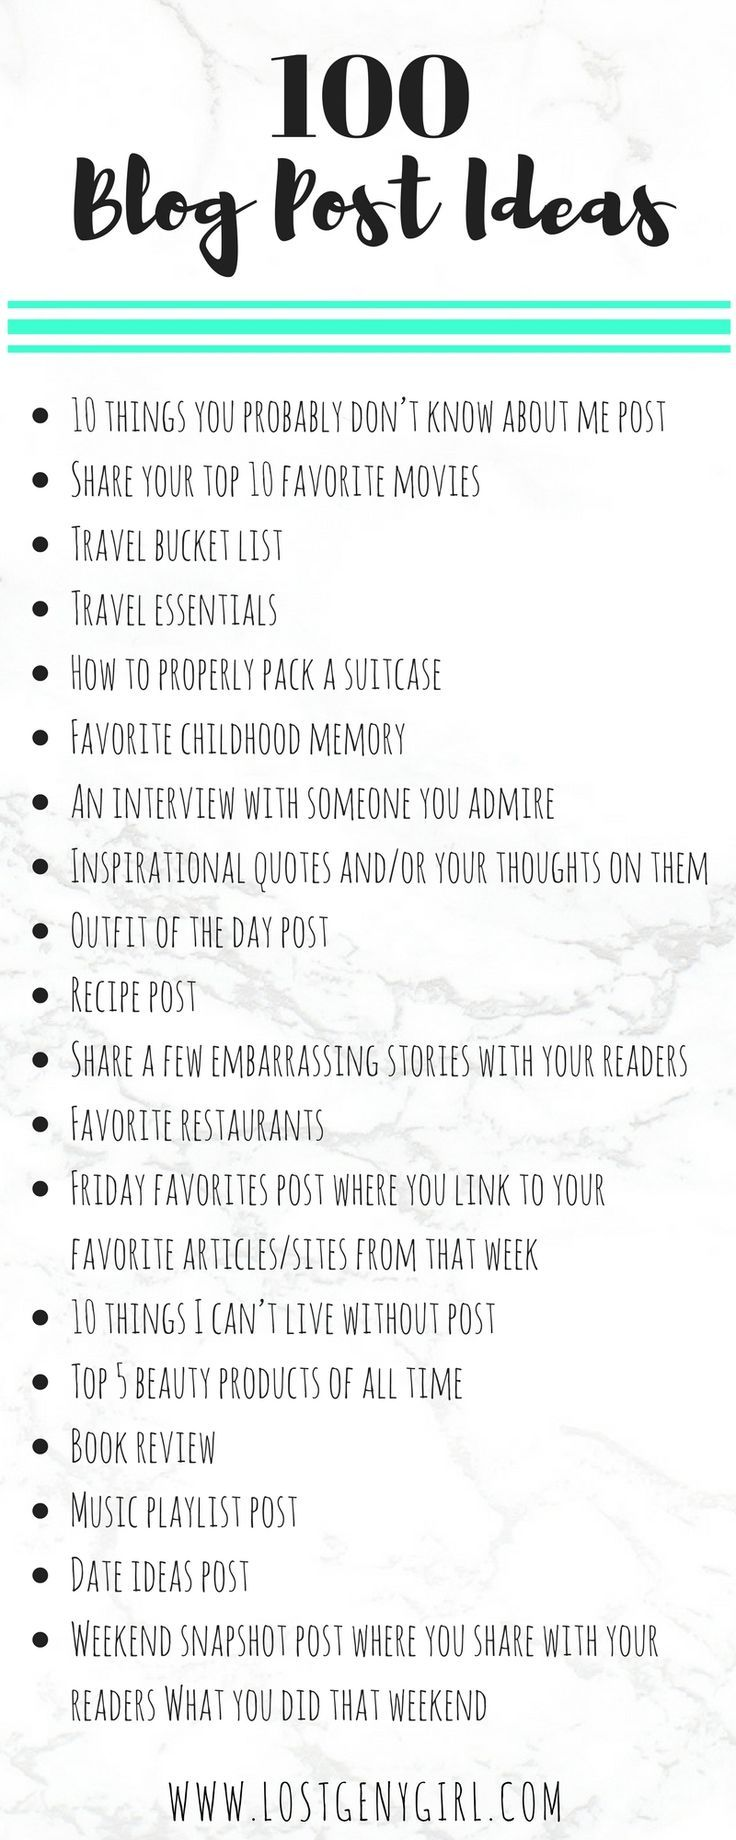 100 Lifestyle Blog Post Ideas | Blog post ideas to help you fight writer's block. #noexcuses #bloggerlife